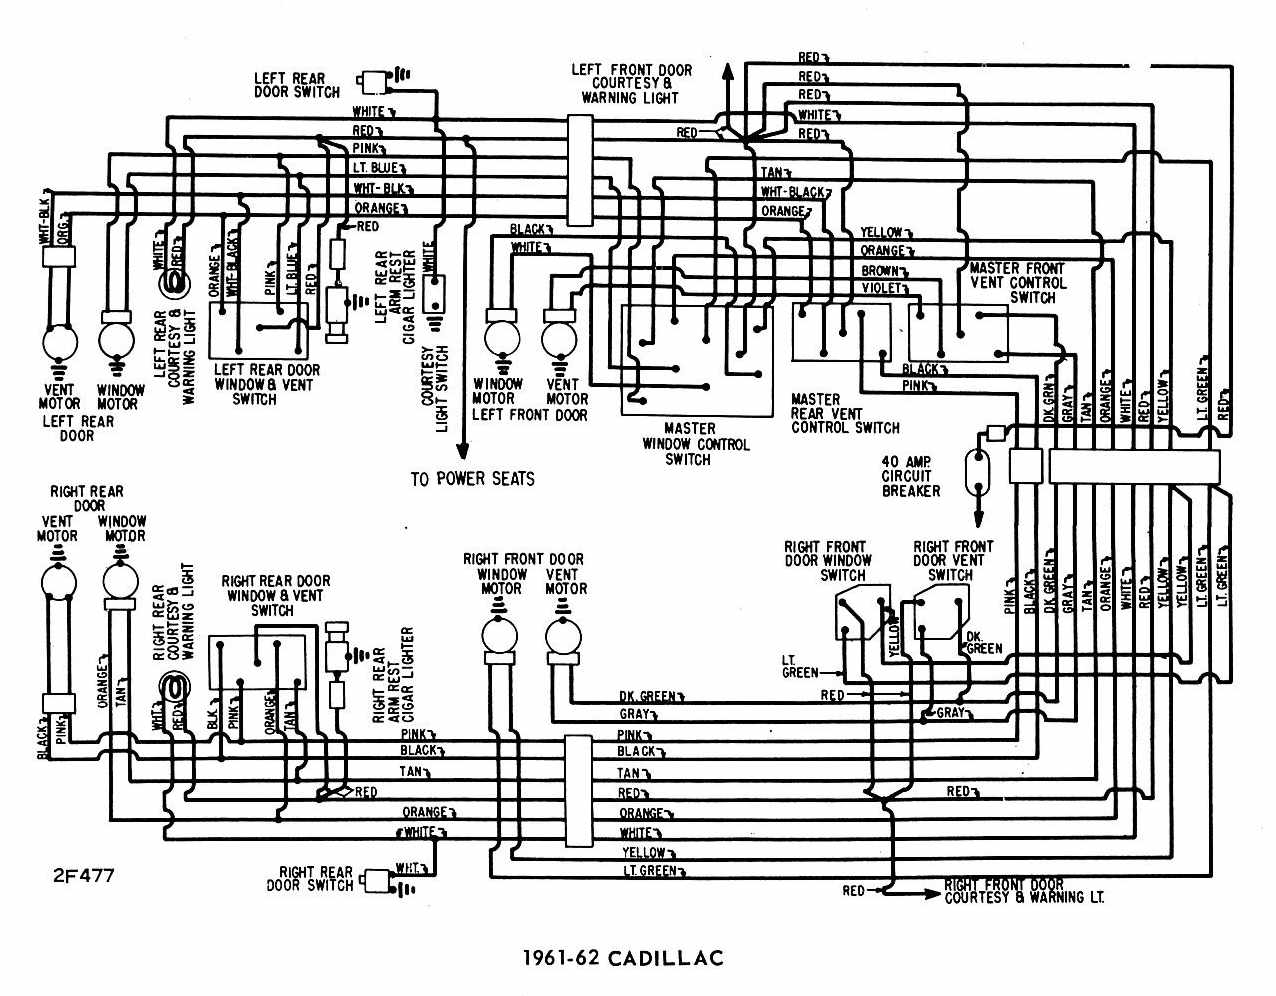 medium resolution of cadillac radio wiring diagrams wiring library fleetwood coronado wiring diagram on cadillac cts wiring diagrams